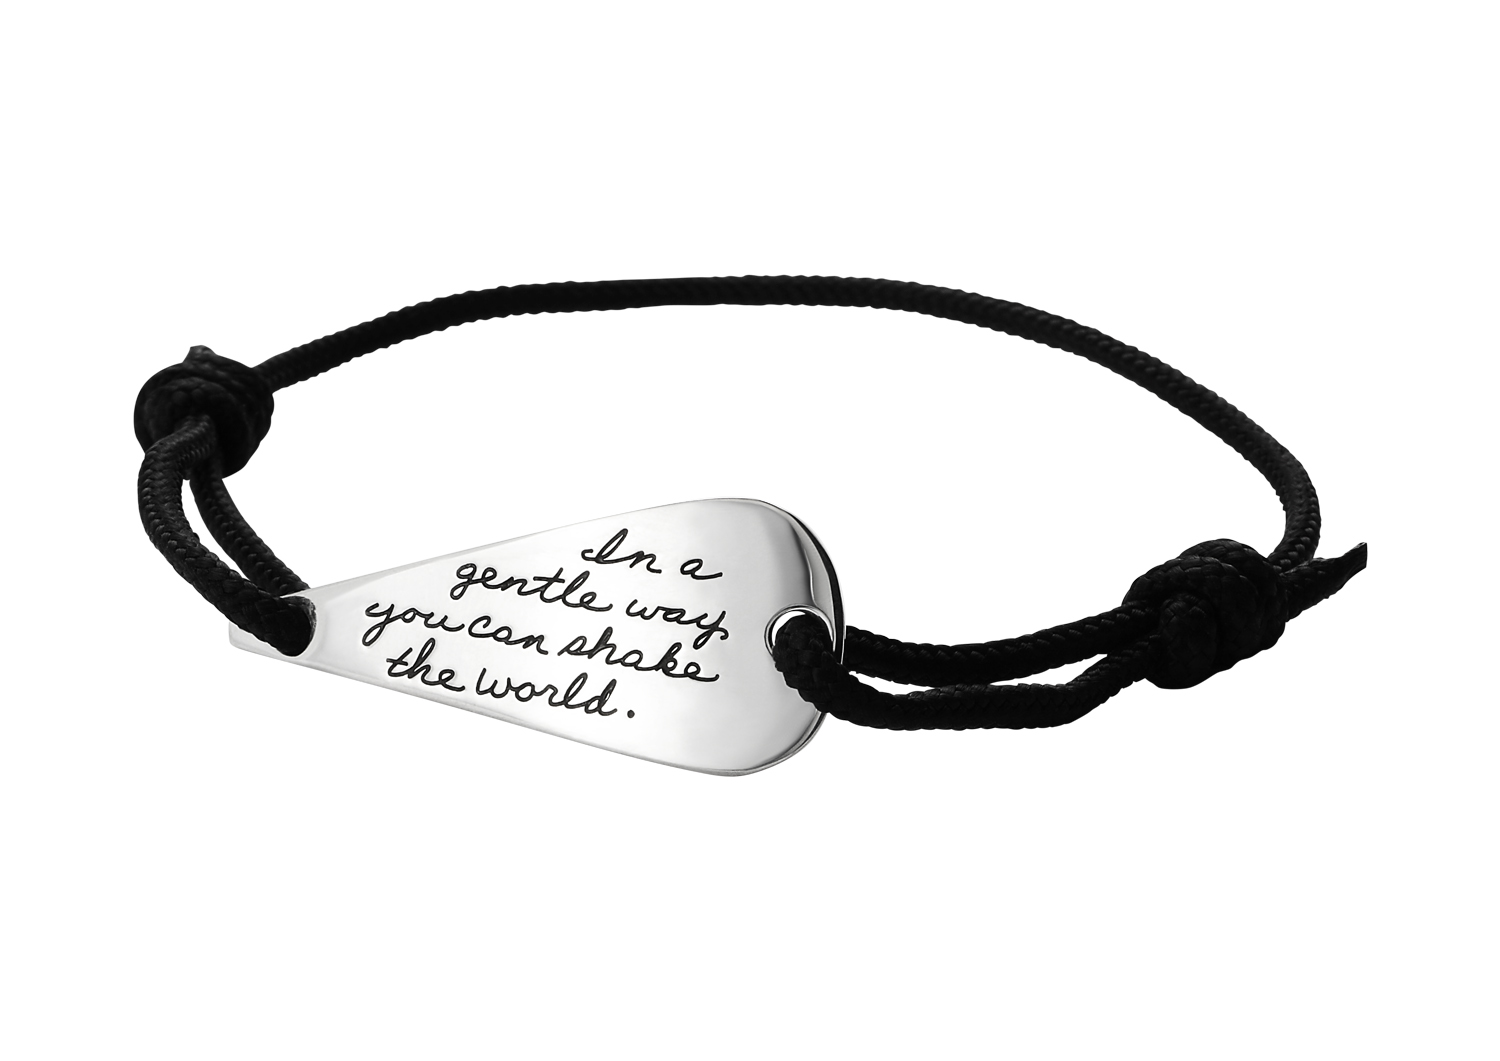 Wrist cord with engraved quote - In a gentle way you can shake the world. | BB Becker | Inspirational Jewelry